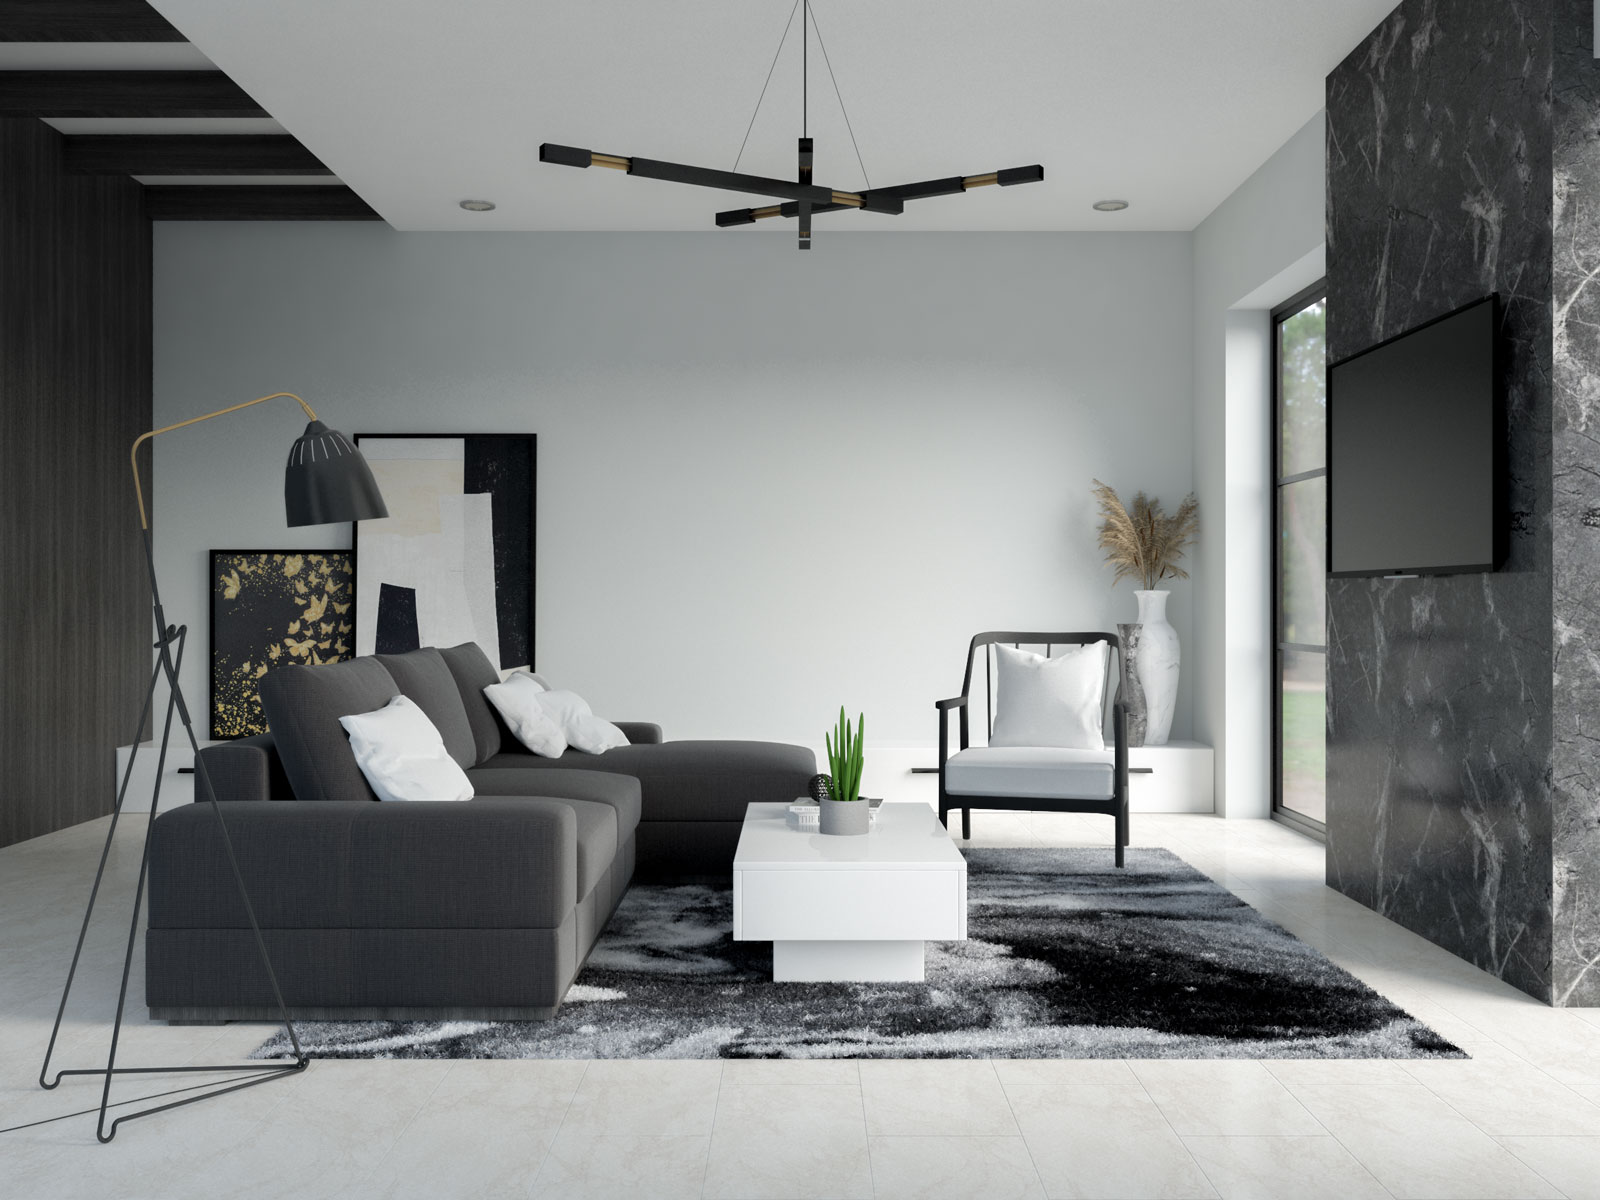 Olympus white walls with black and white furniture